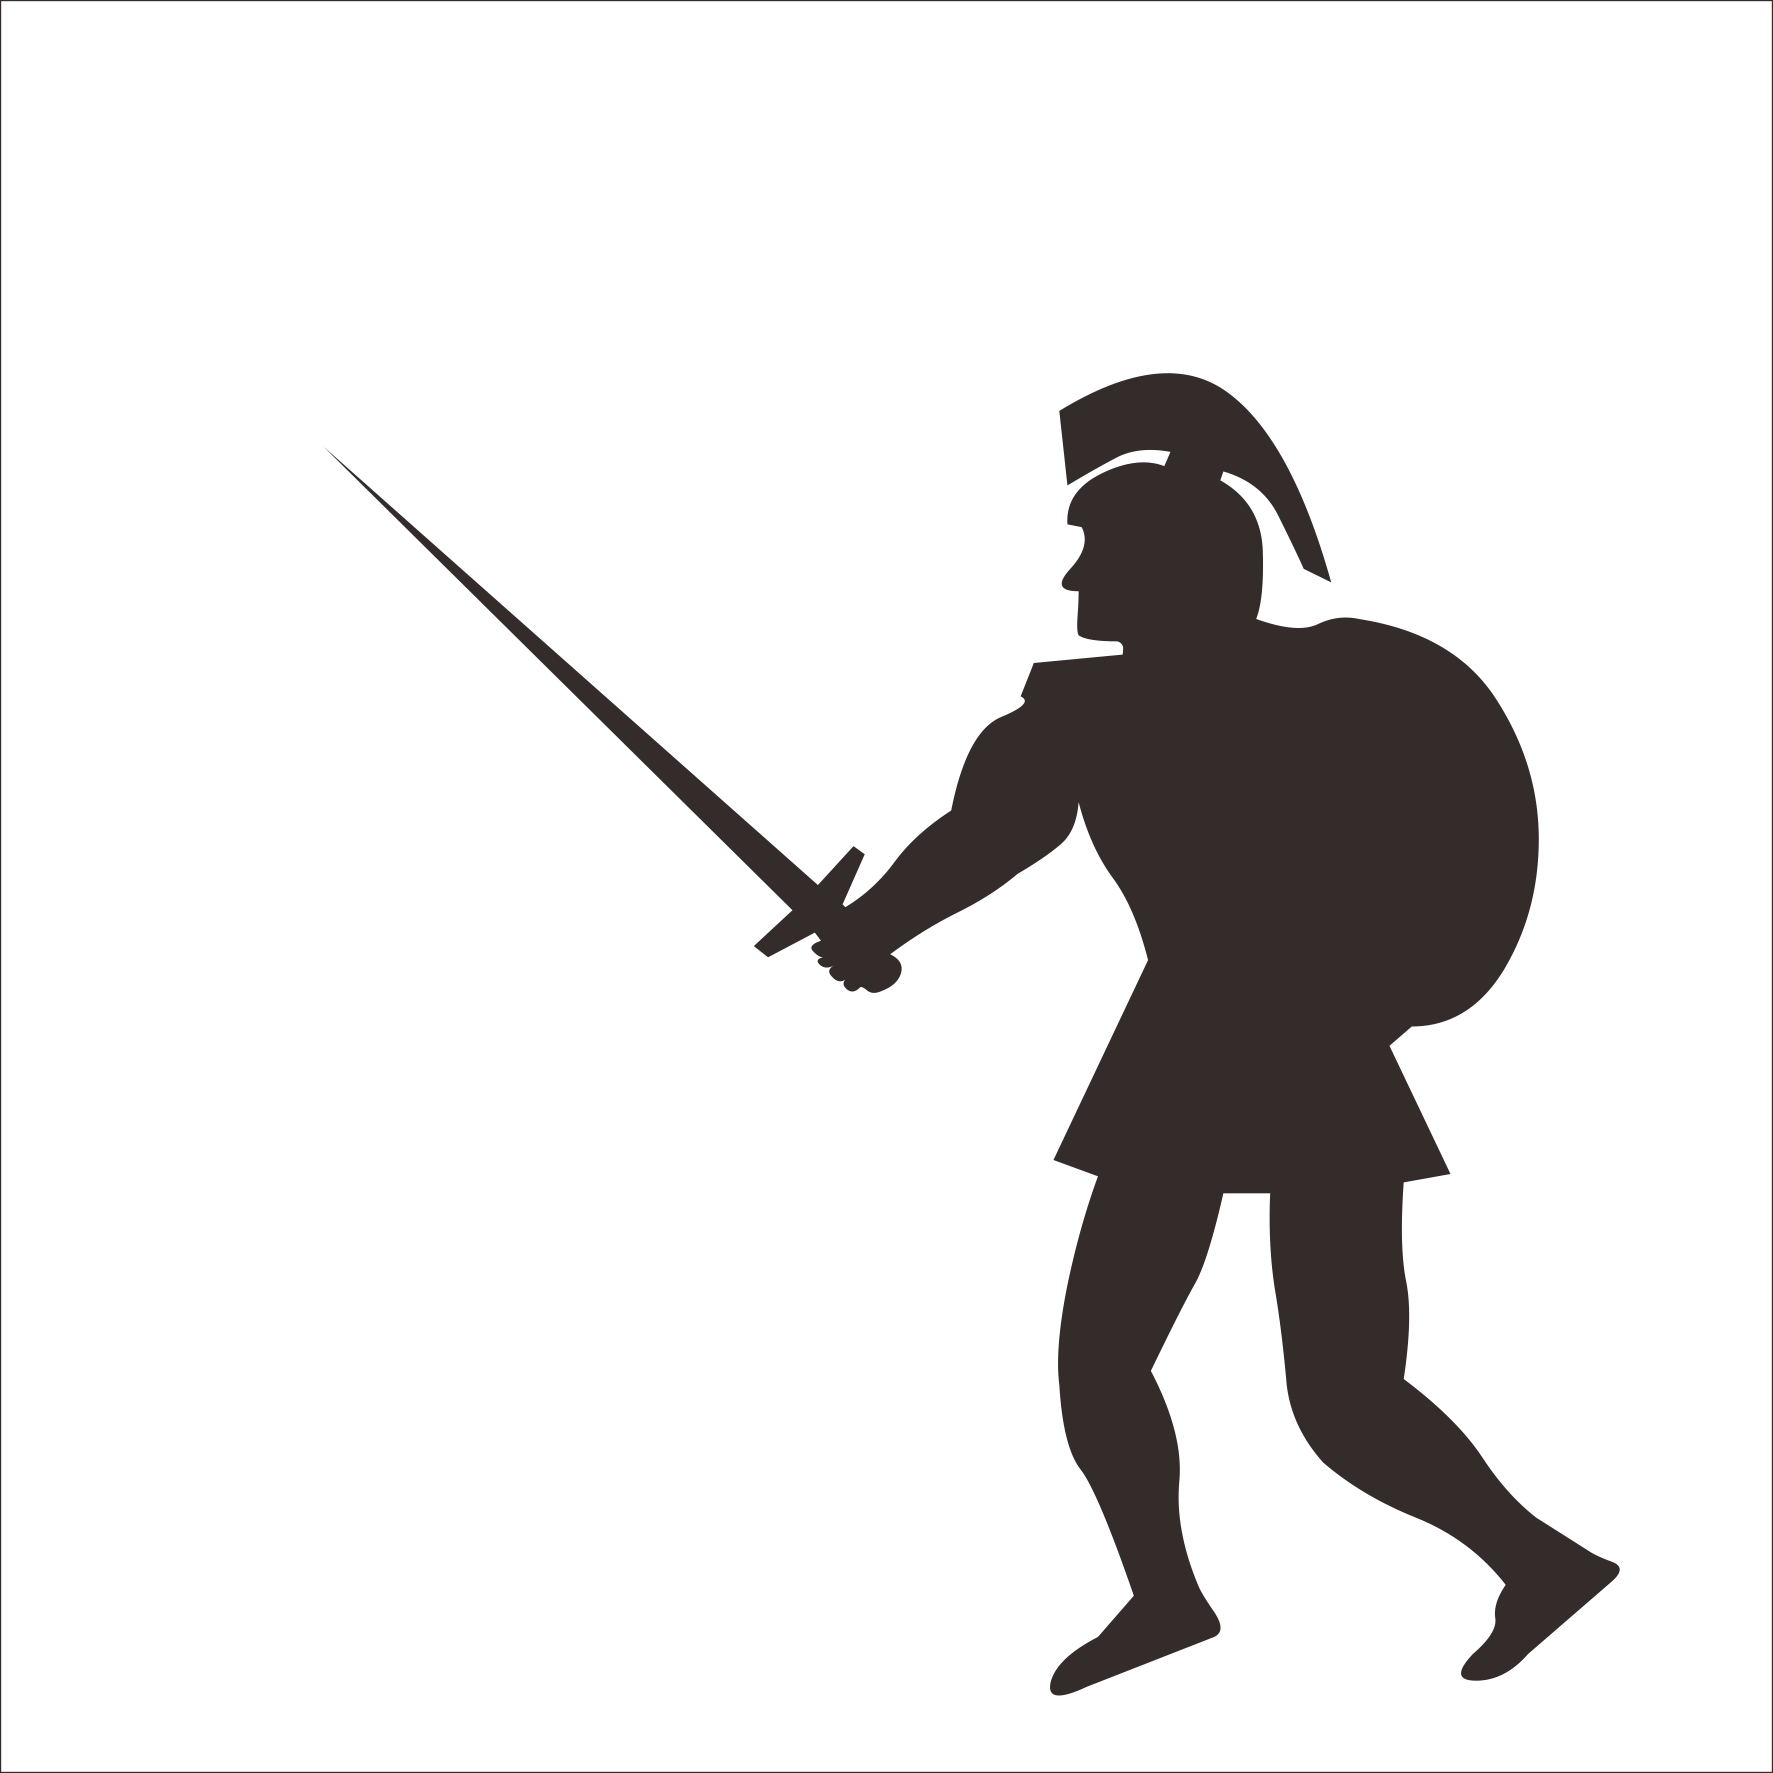 svg royalty free stock Soldier gladius sword roman. Army black and white clipart